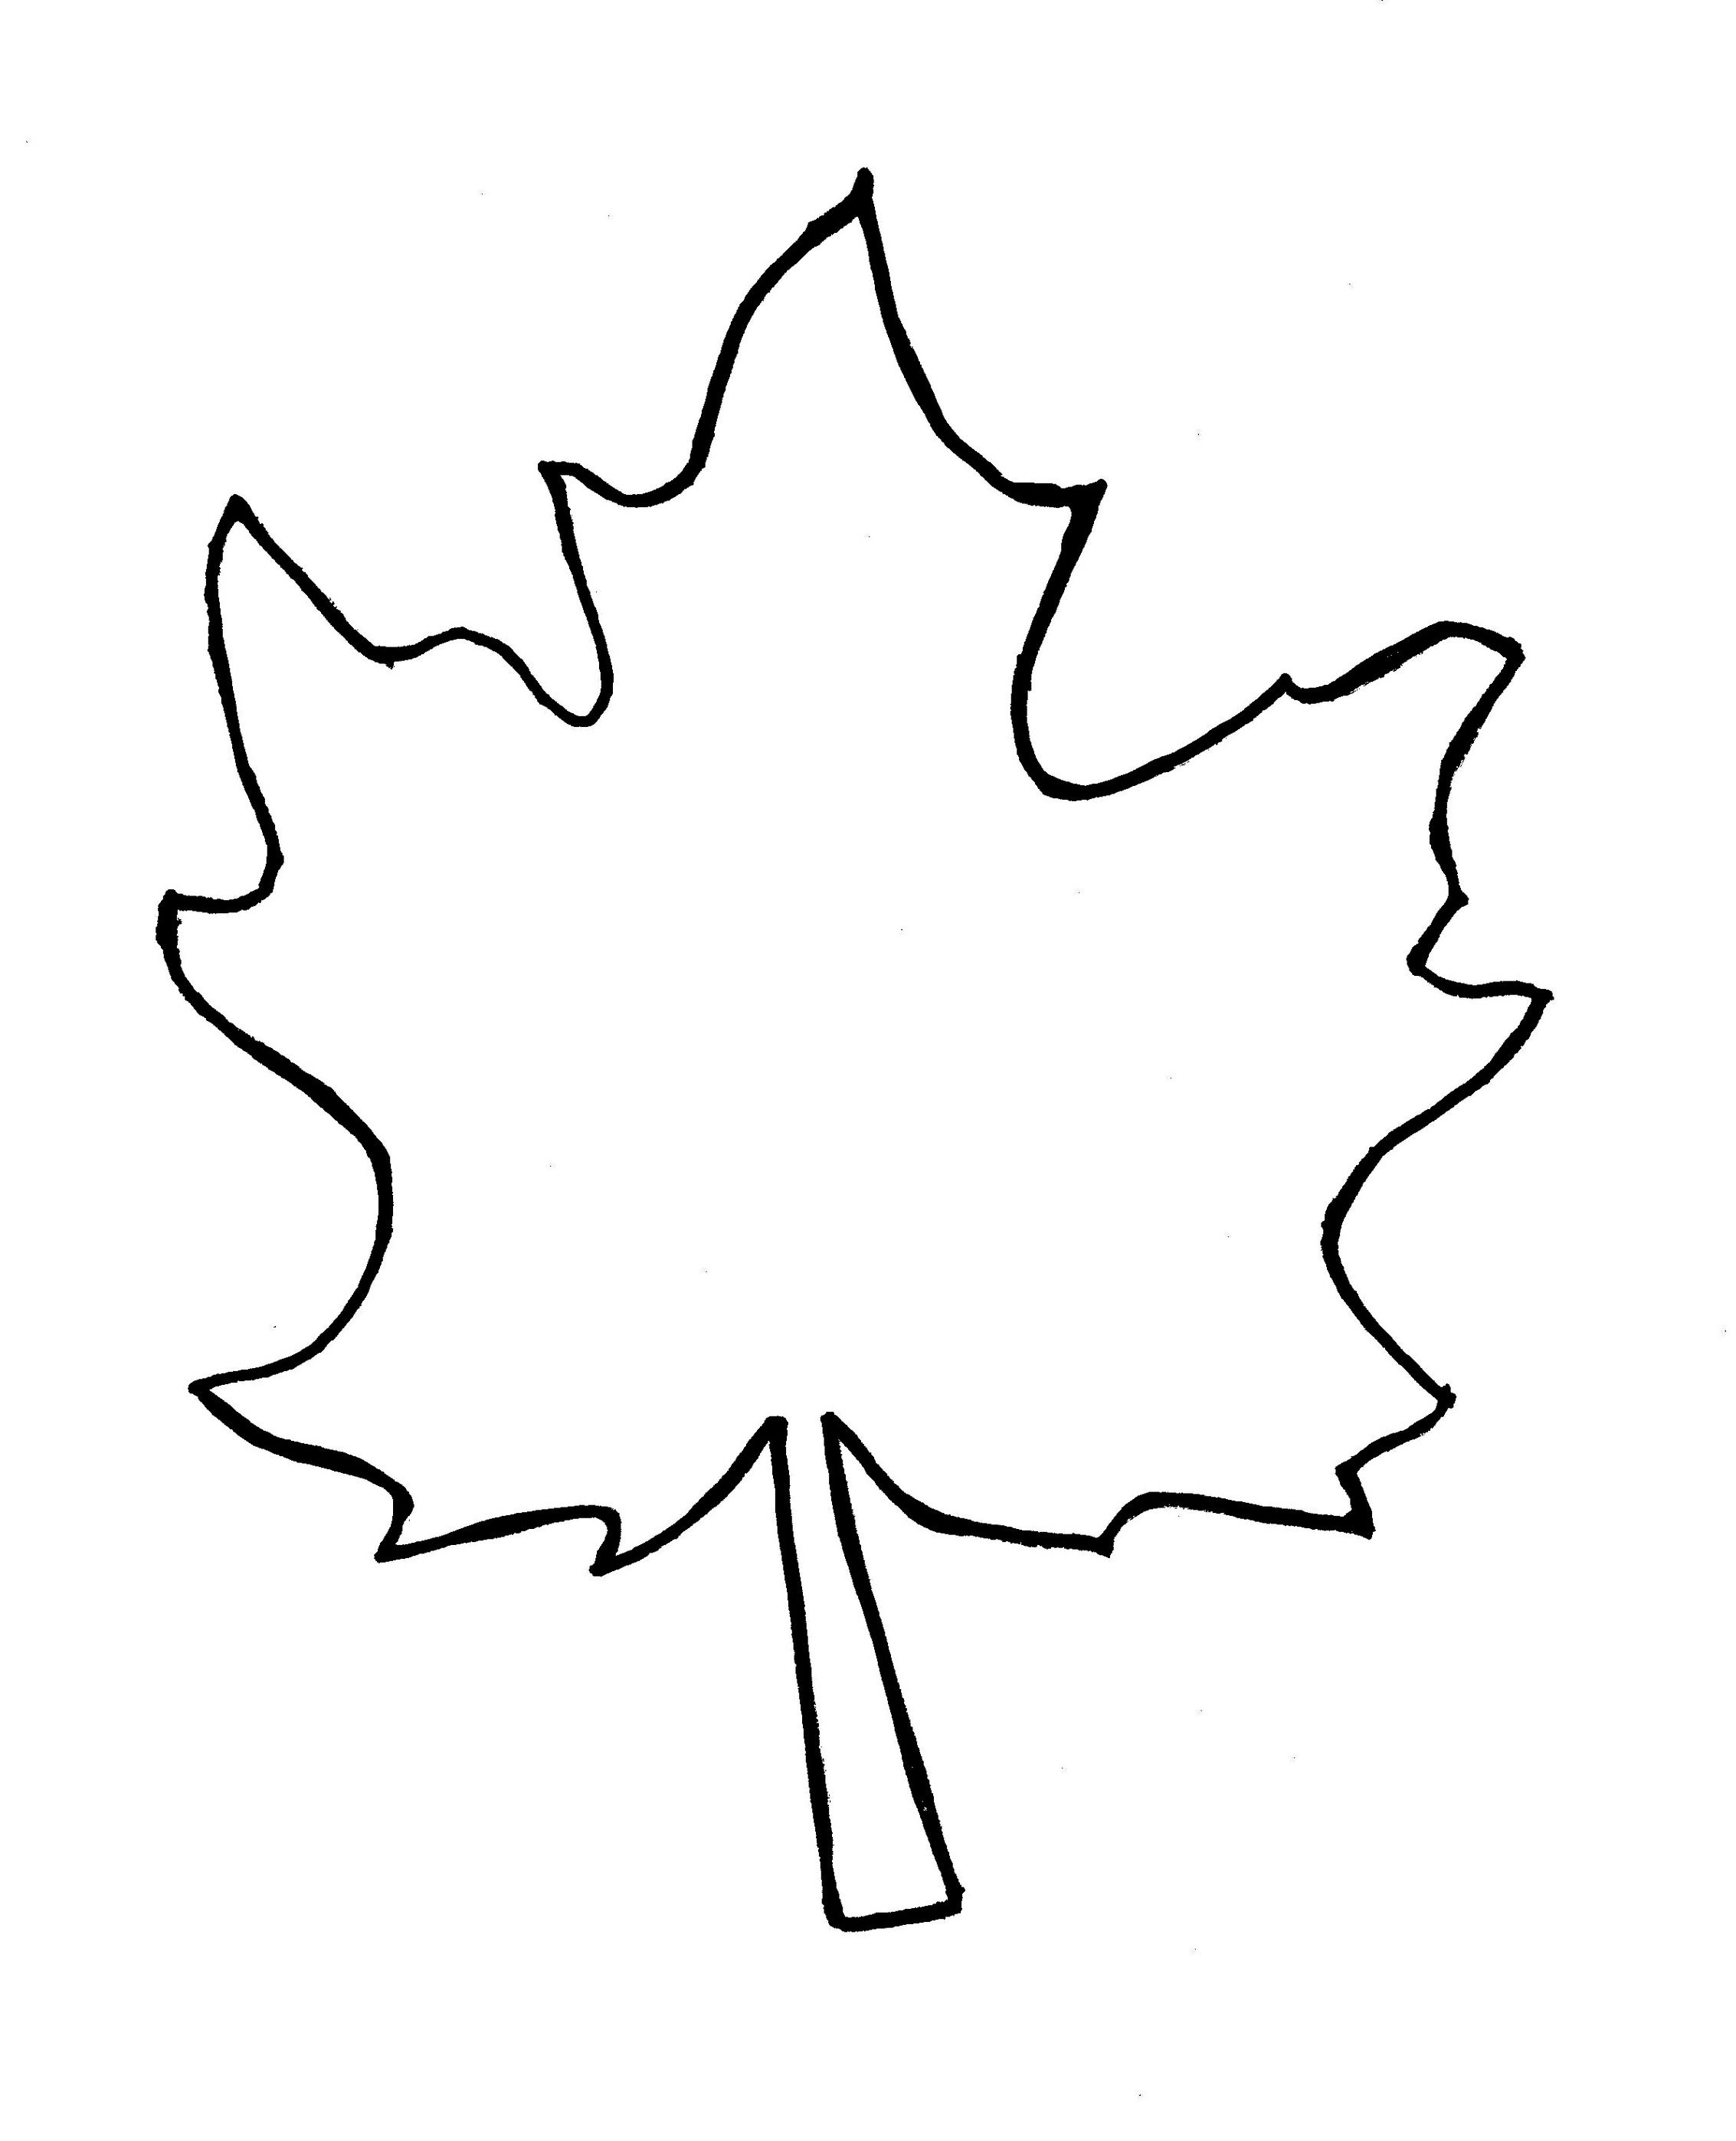 Autumn Leaf Outline Template Clipart Free To Use Clip Art Resource 2 - Free Printable Leaves